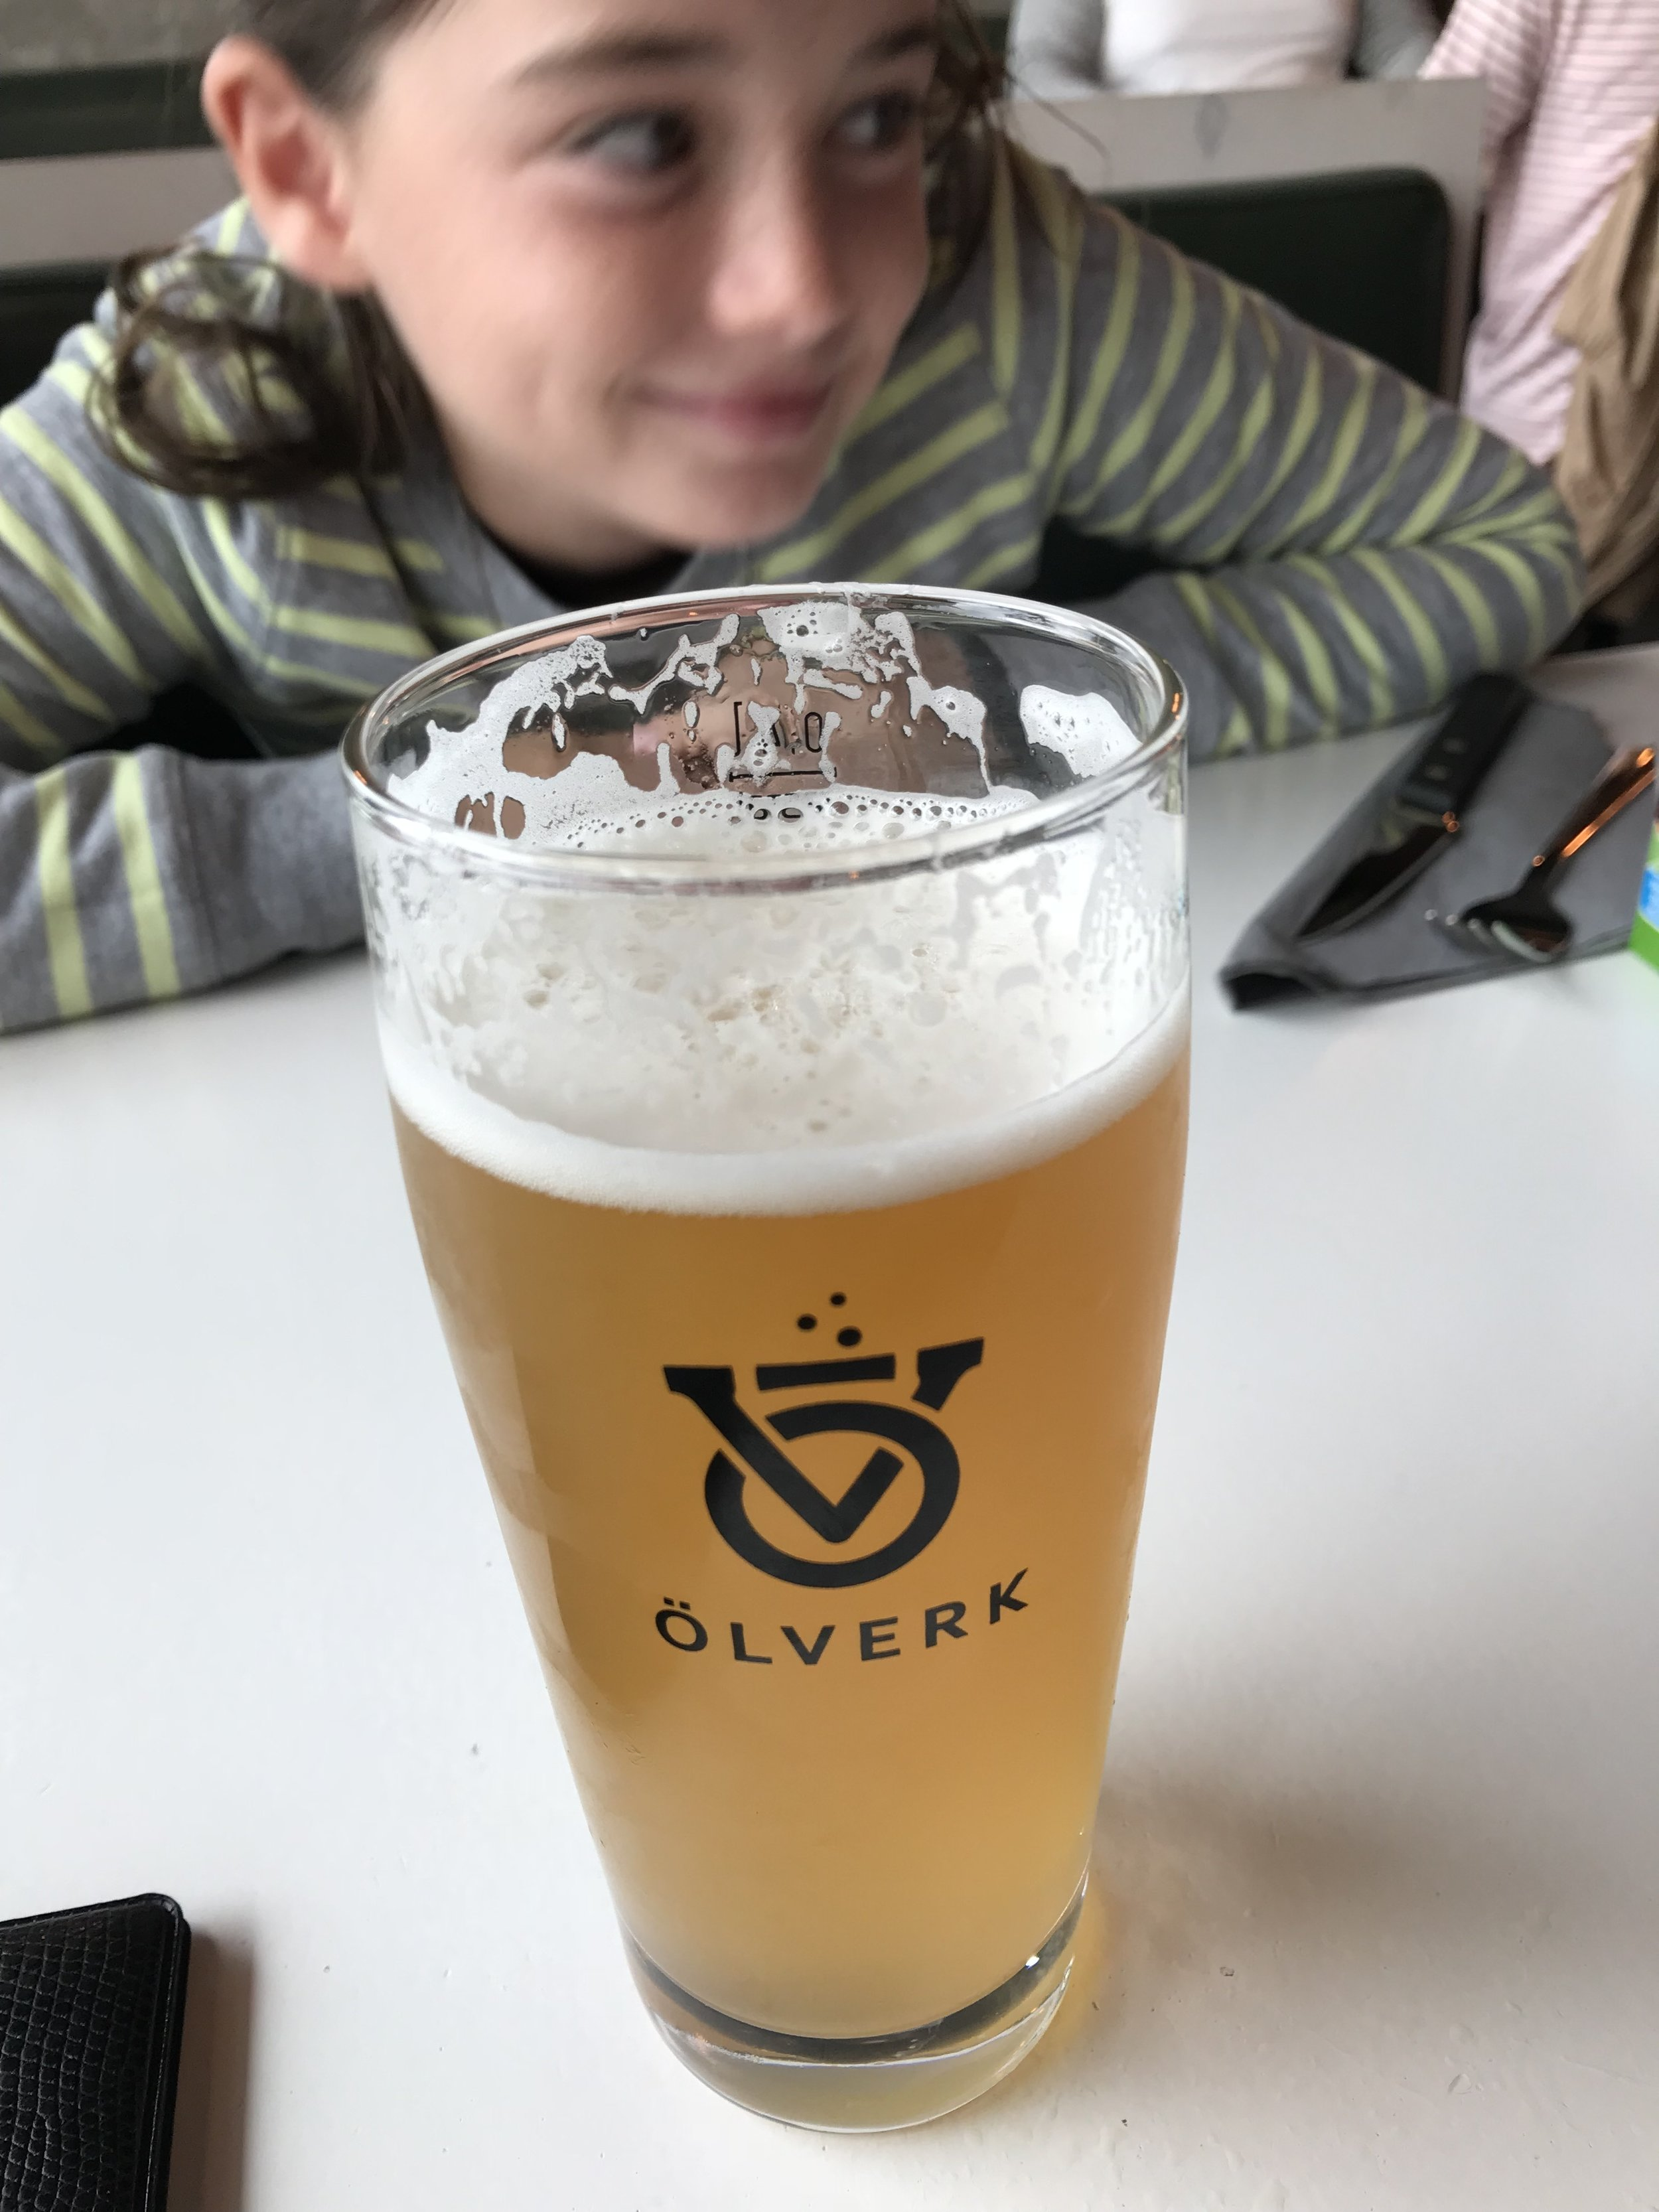 It's important to have some good beer recommendations when you travel, right?!